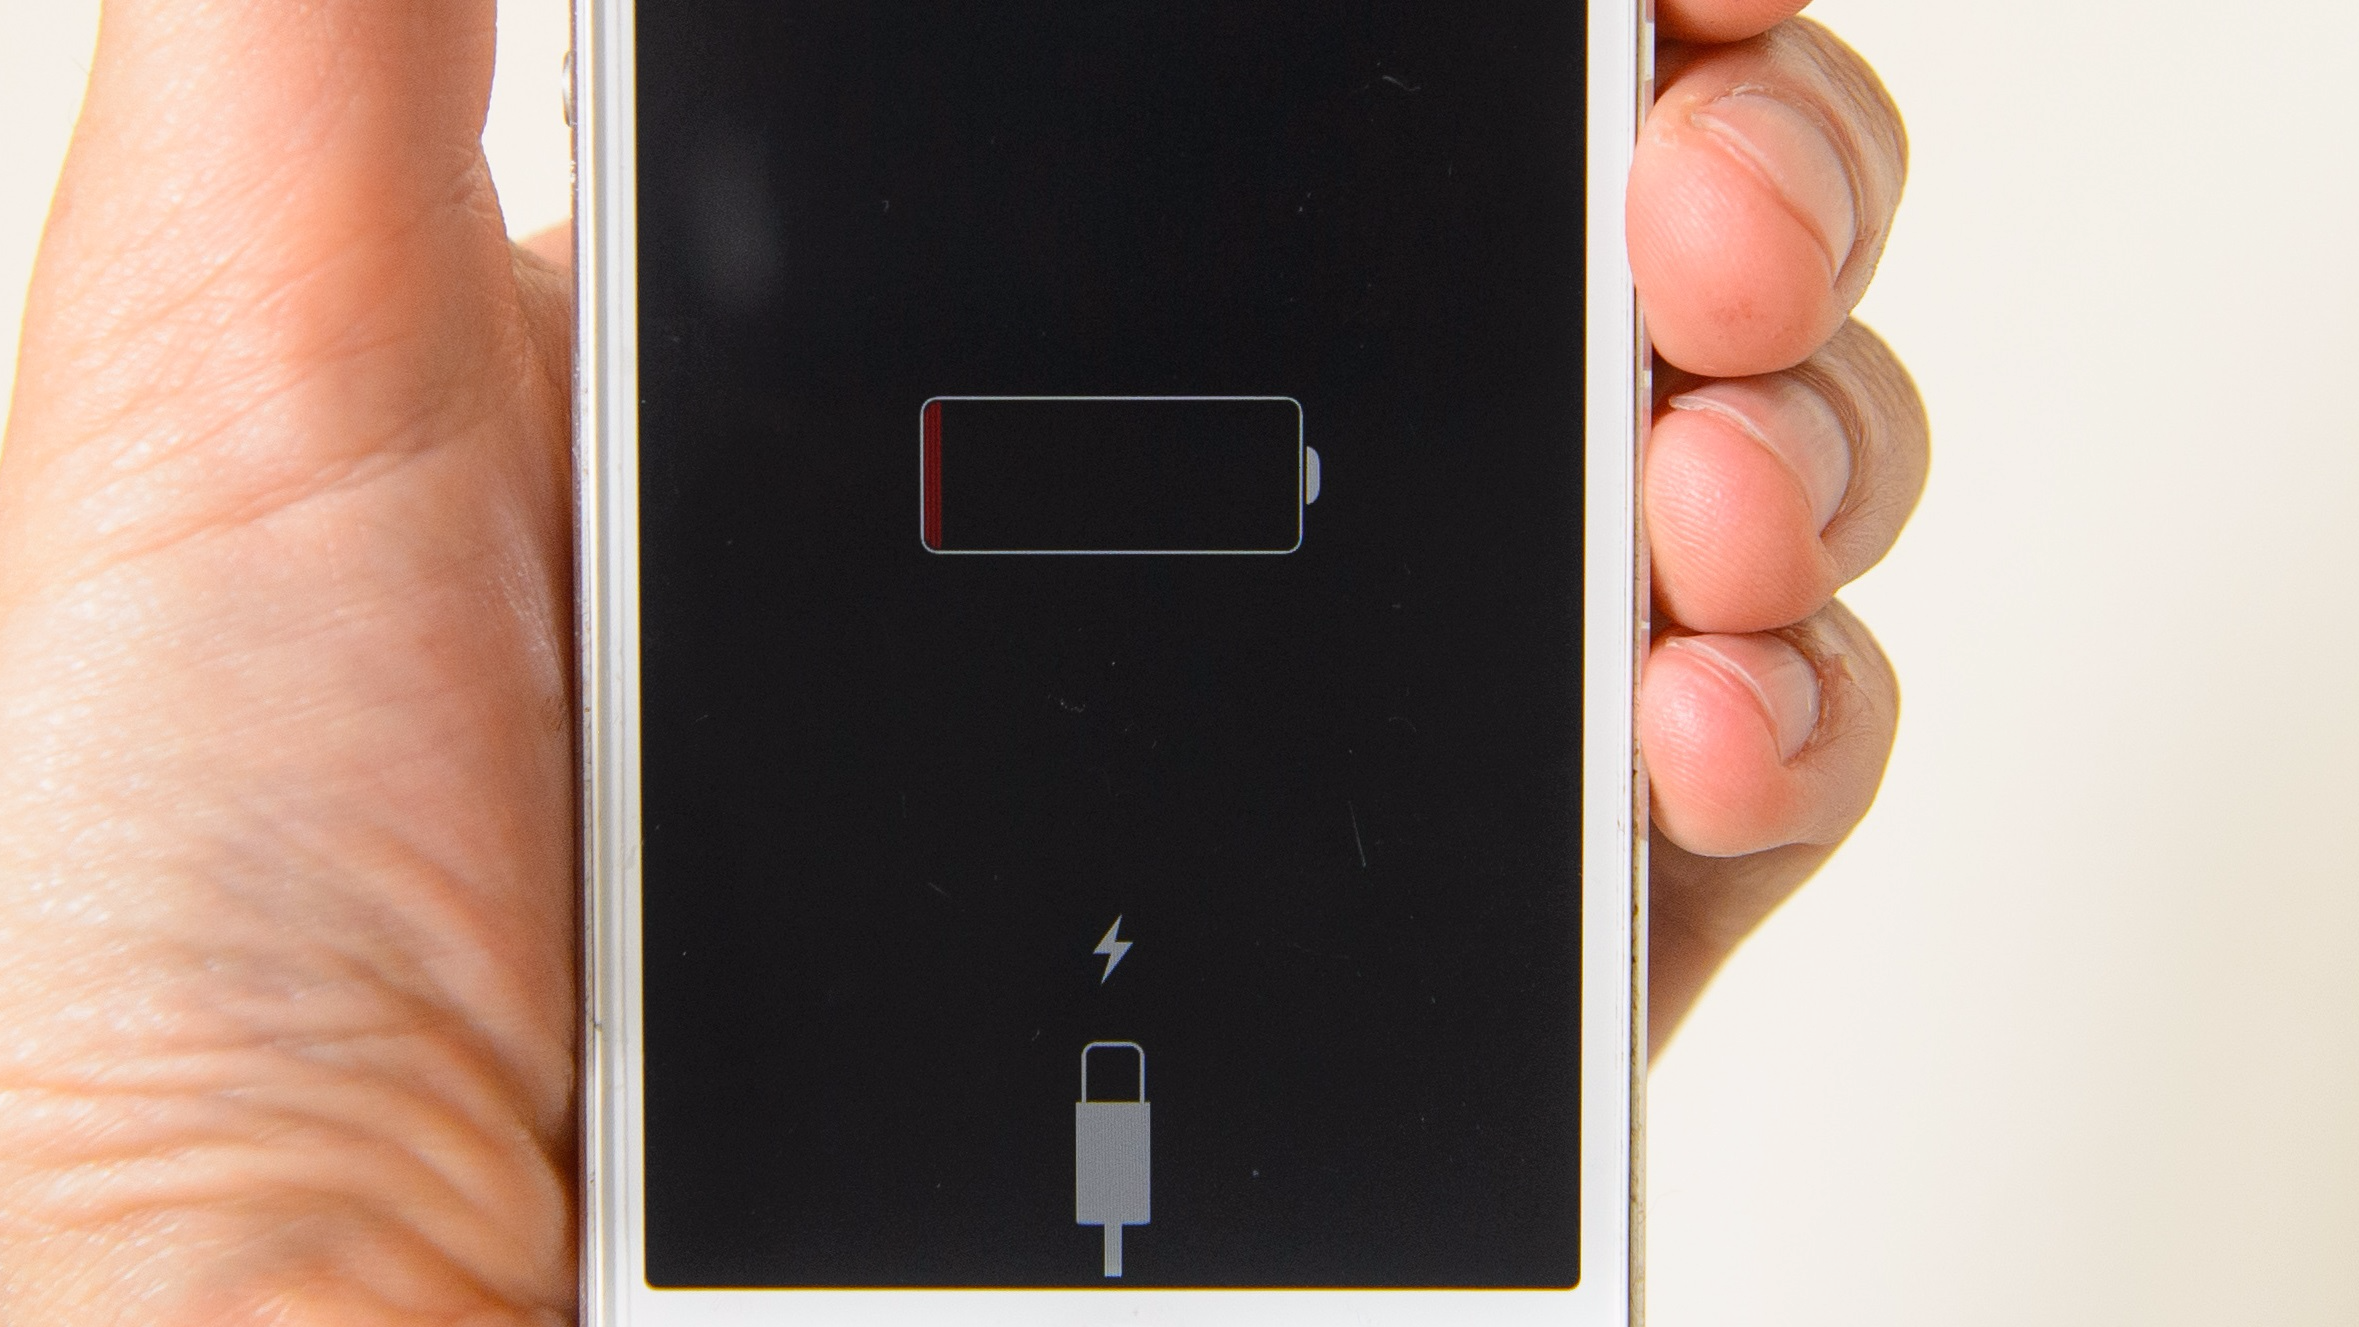 iOS 11 Update Is Causing Huge Battery Drain Problems